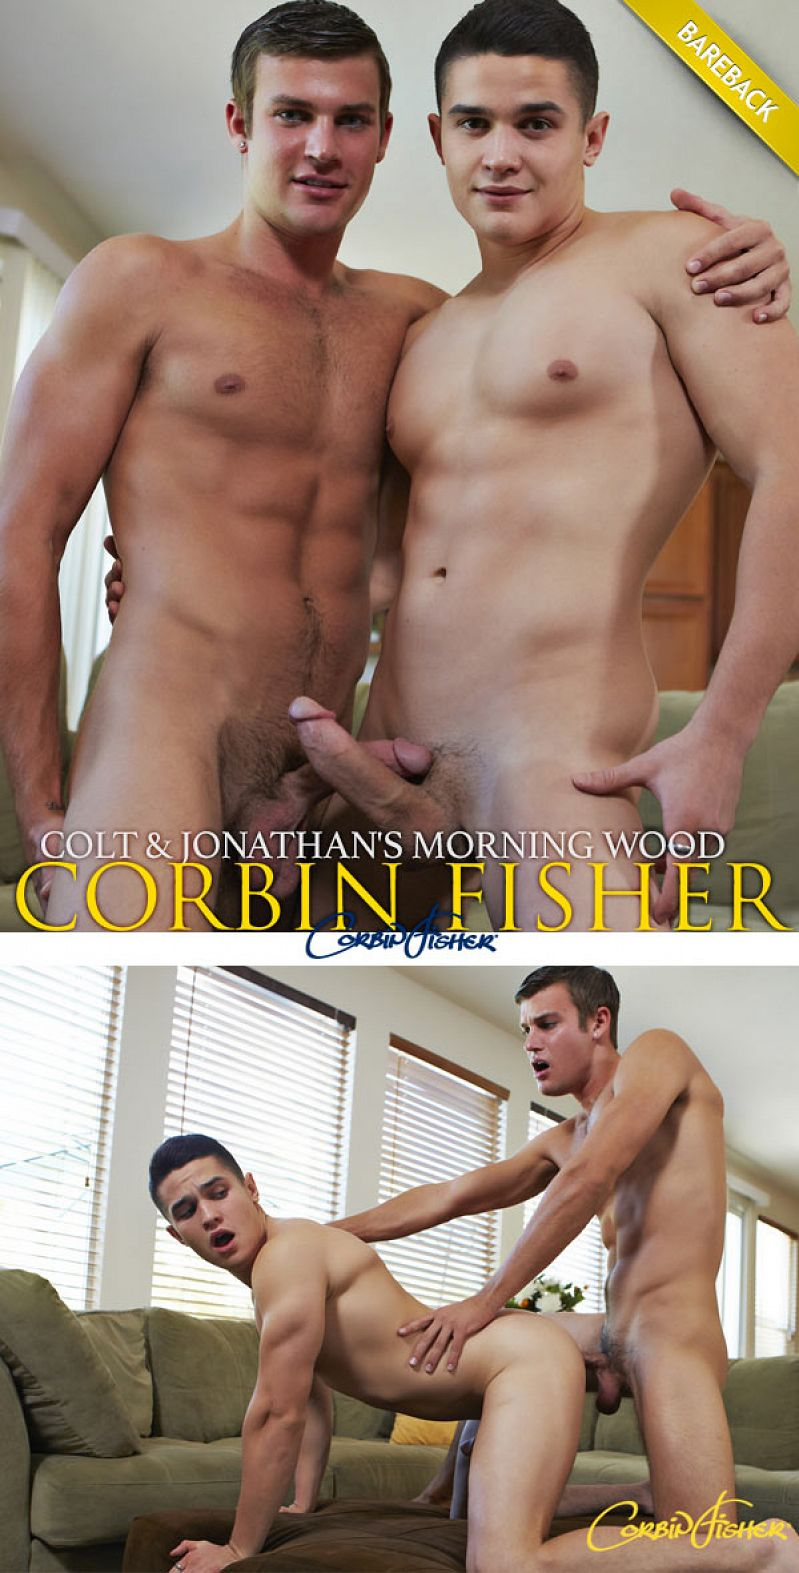 CorbinFisher – Colt & Jonathan's Morning Wood (Bareback)